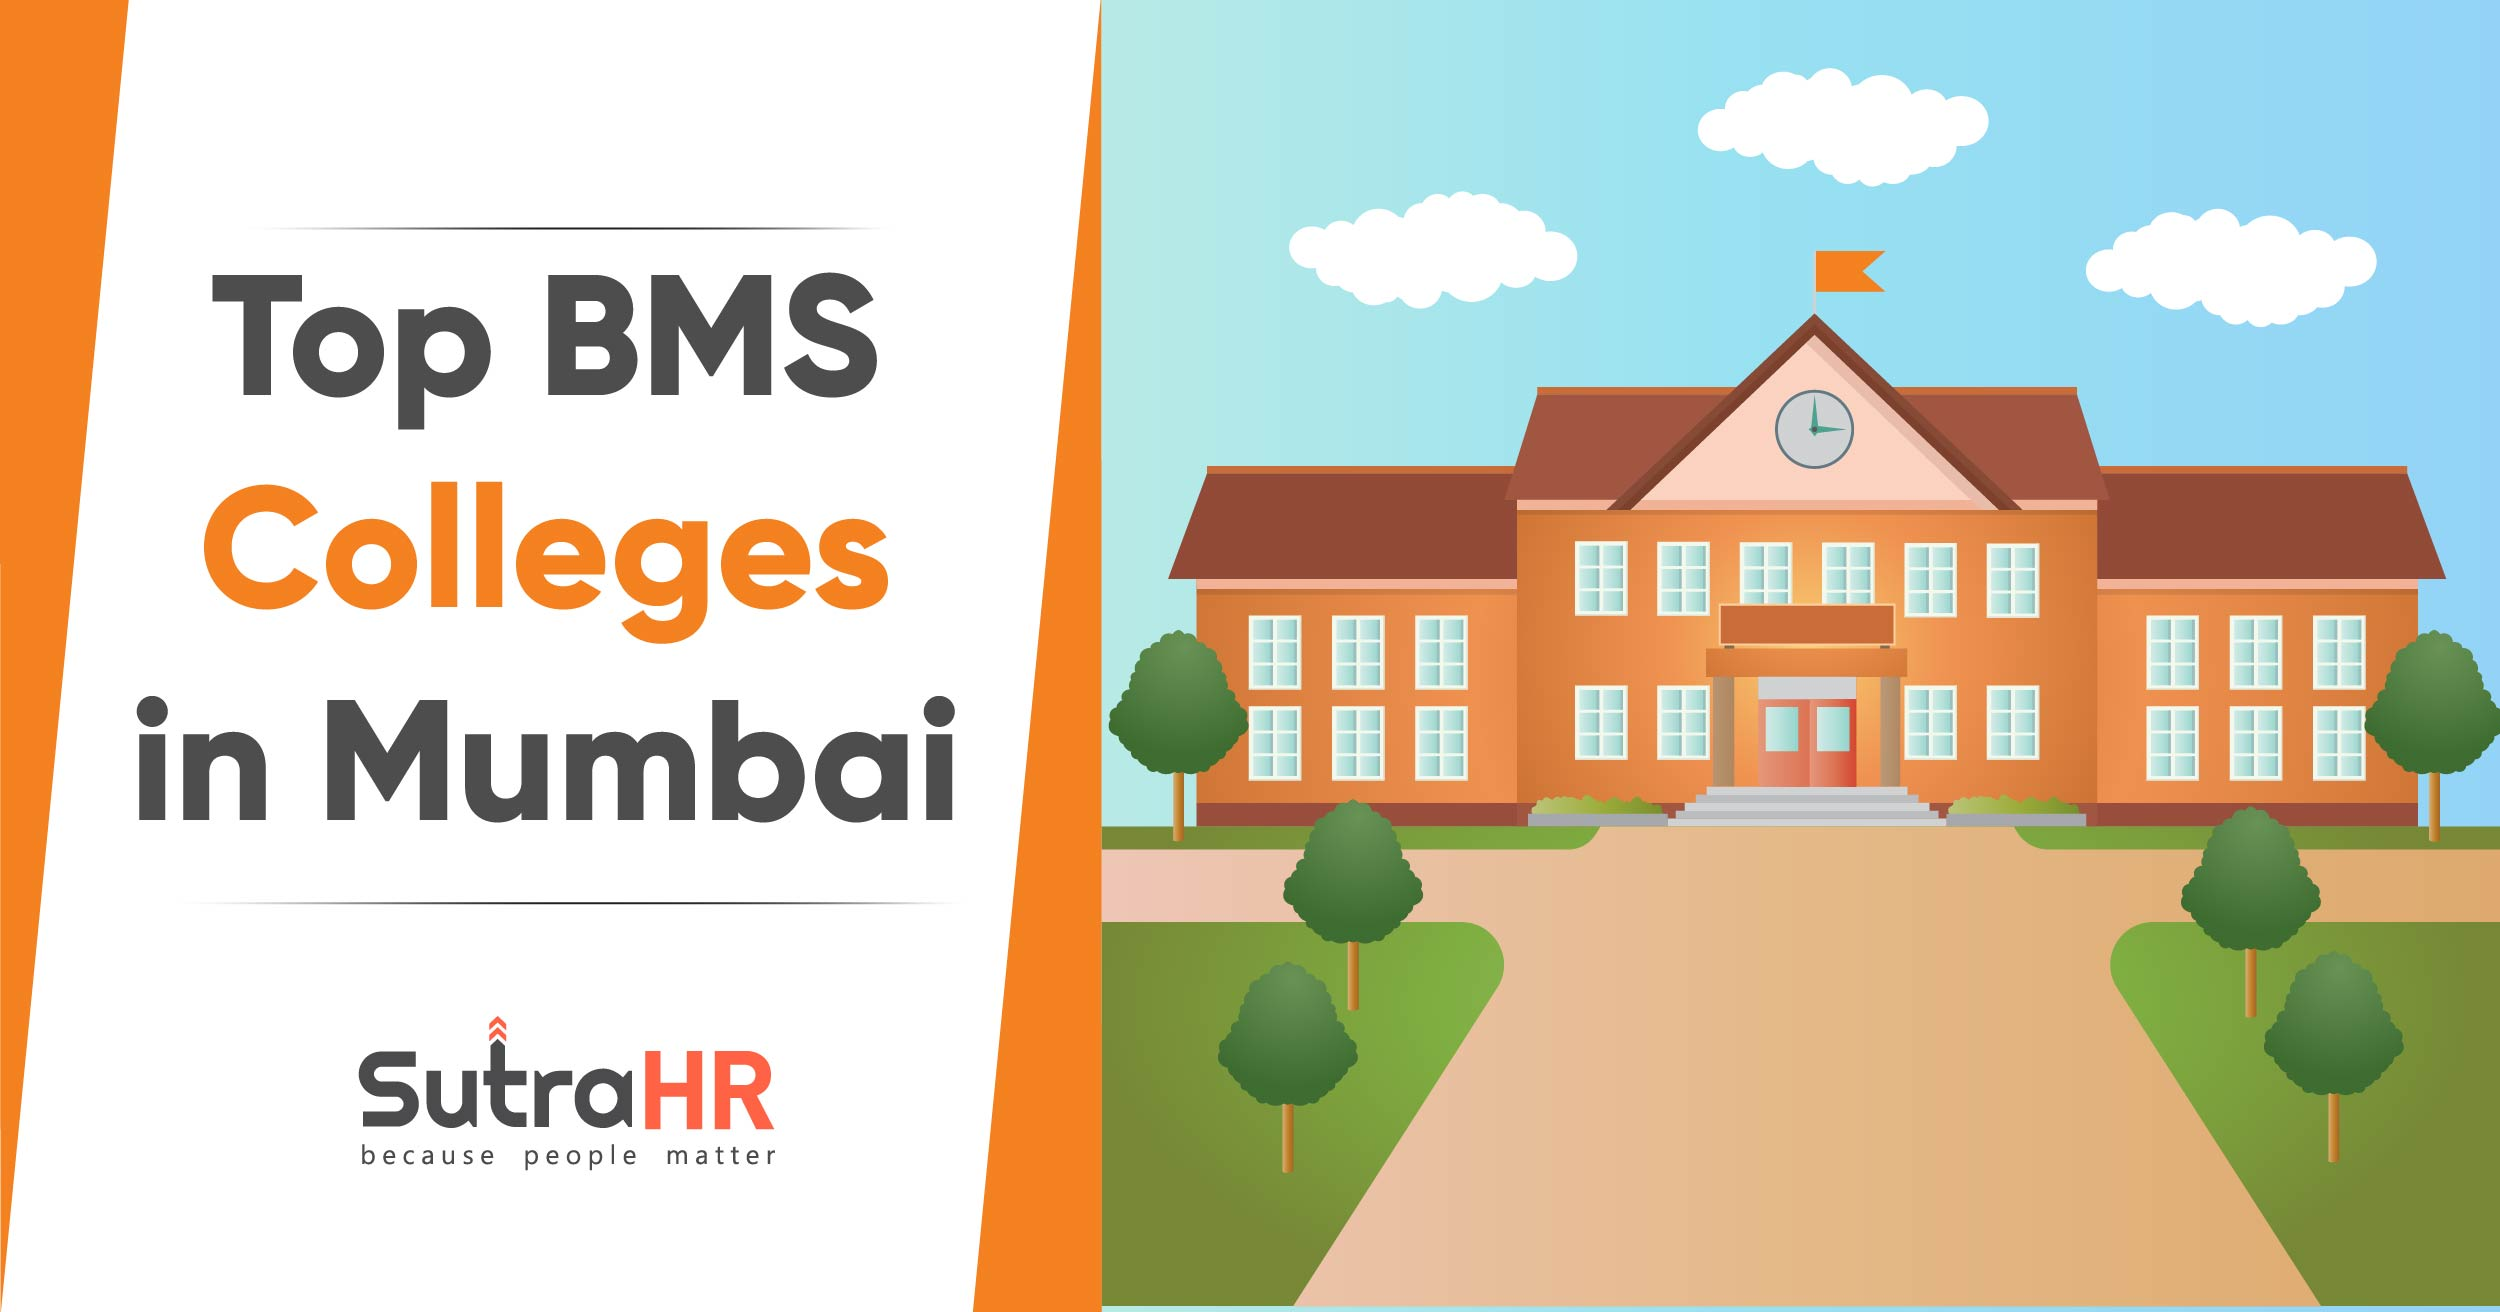 bms colleges in mumbai